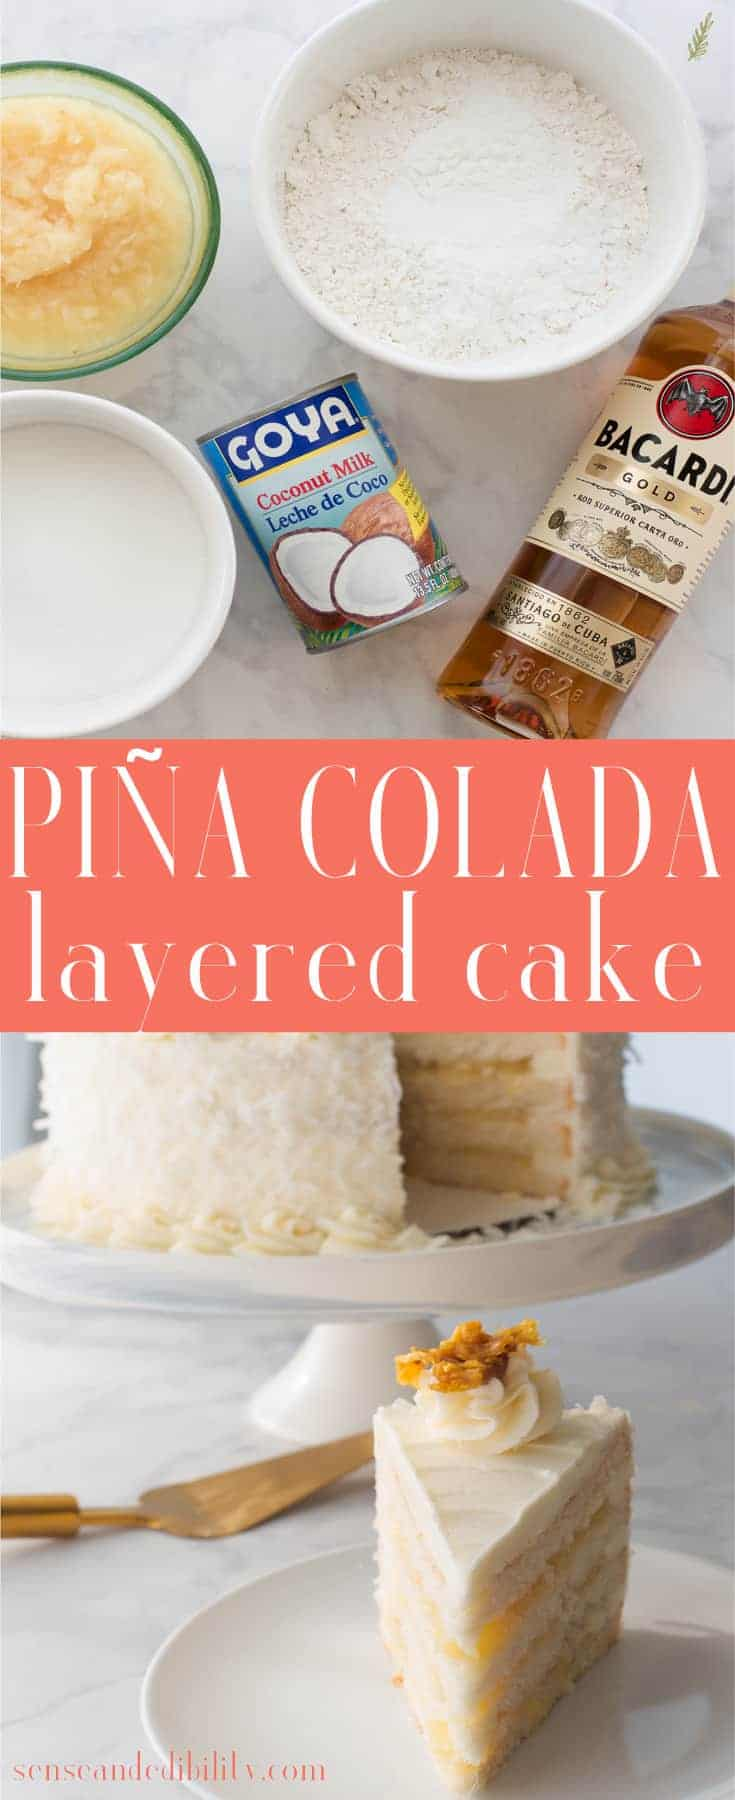 Eating your cocktails is now a thing! A soft, moist coconut cake is layered with a pineapple-rum filling and covered in creamy vanilla buttercream. #pinacolada #pinacoladacake #coconutcake #vanillabuttercream #pineapplecoconut #dessert via @ediblesense